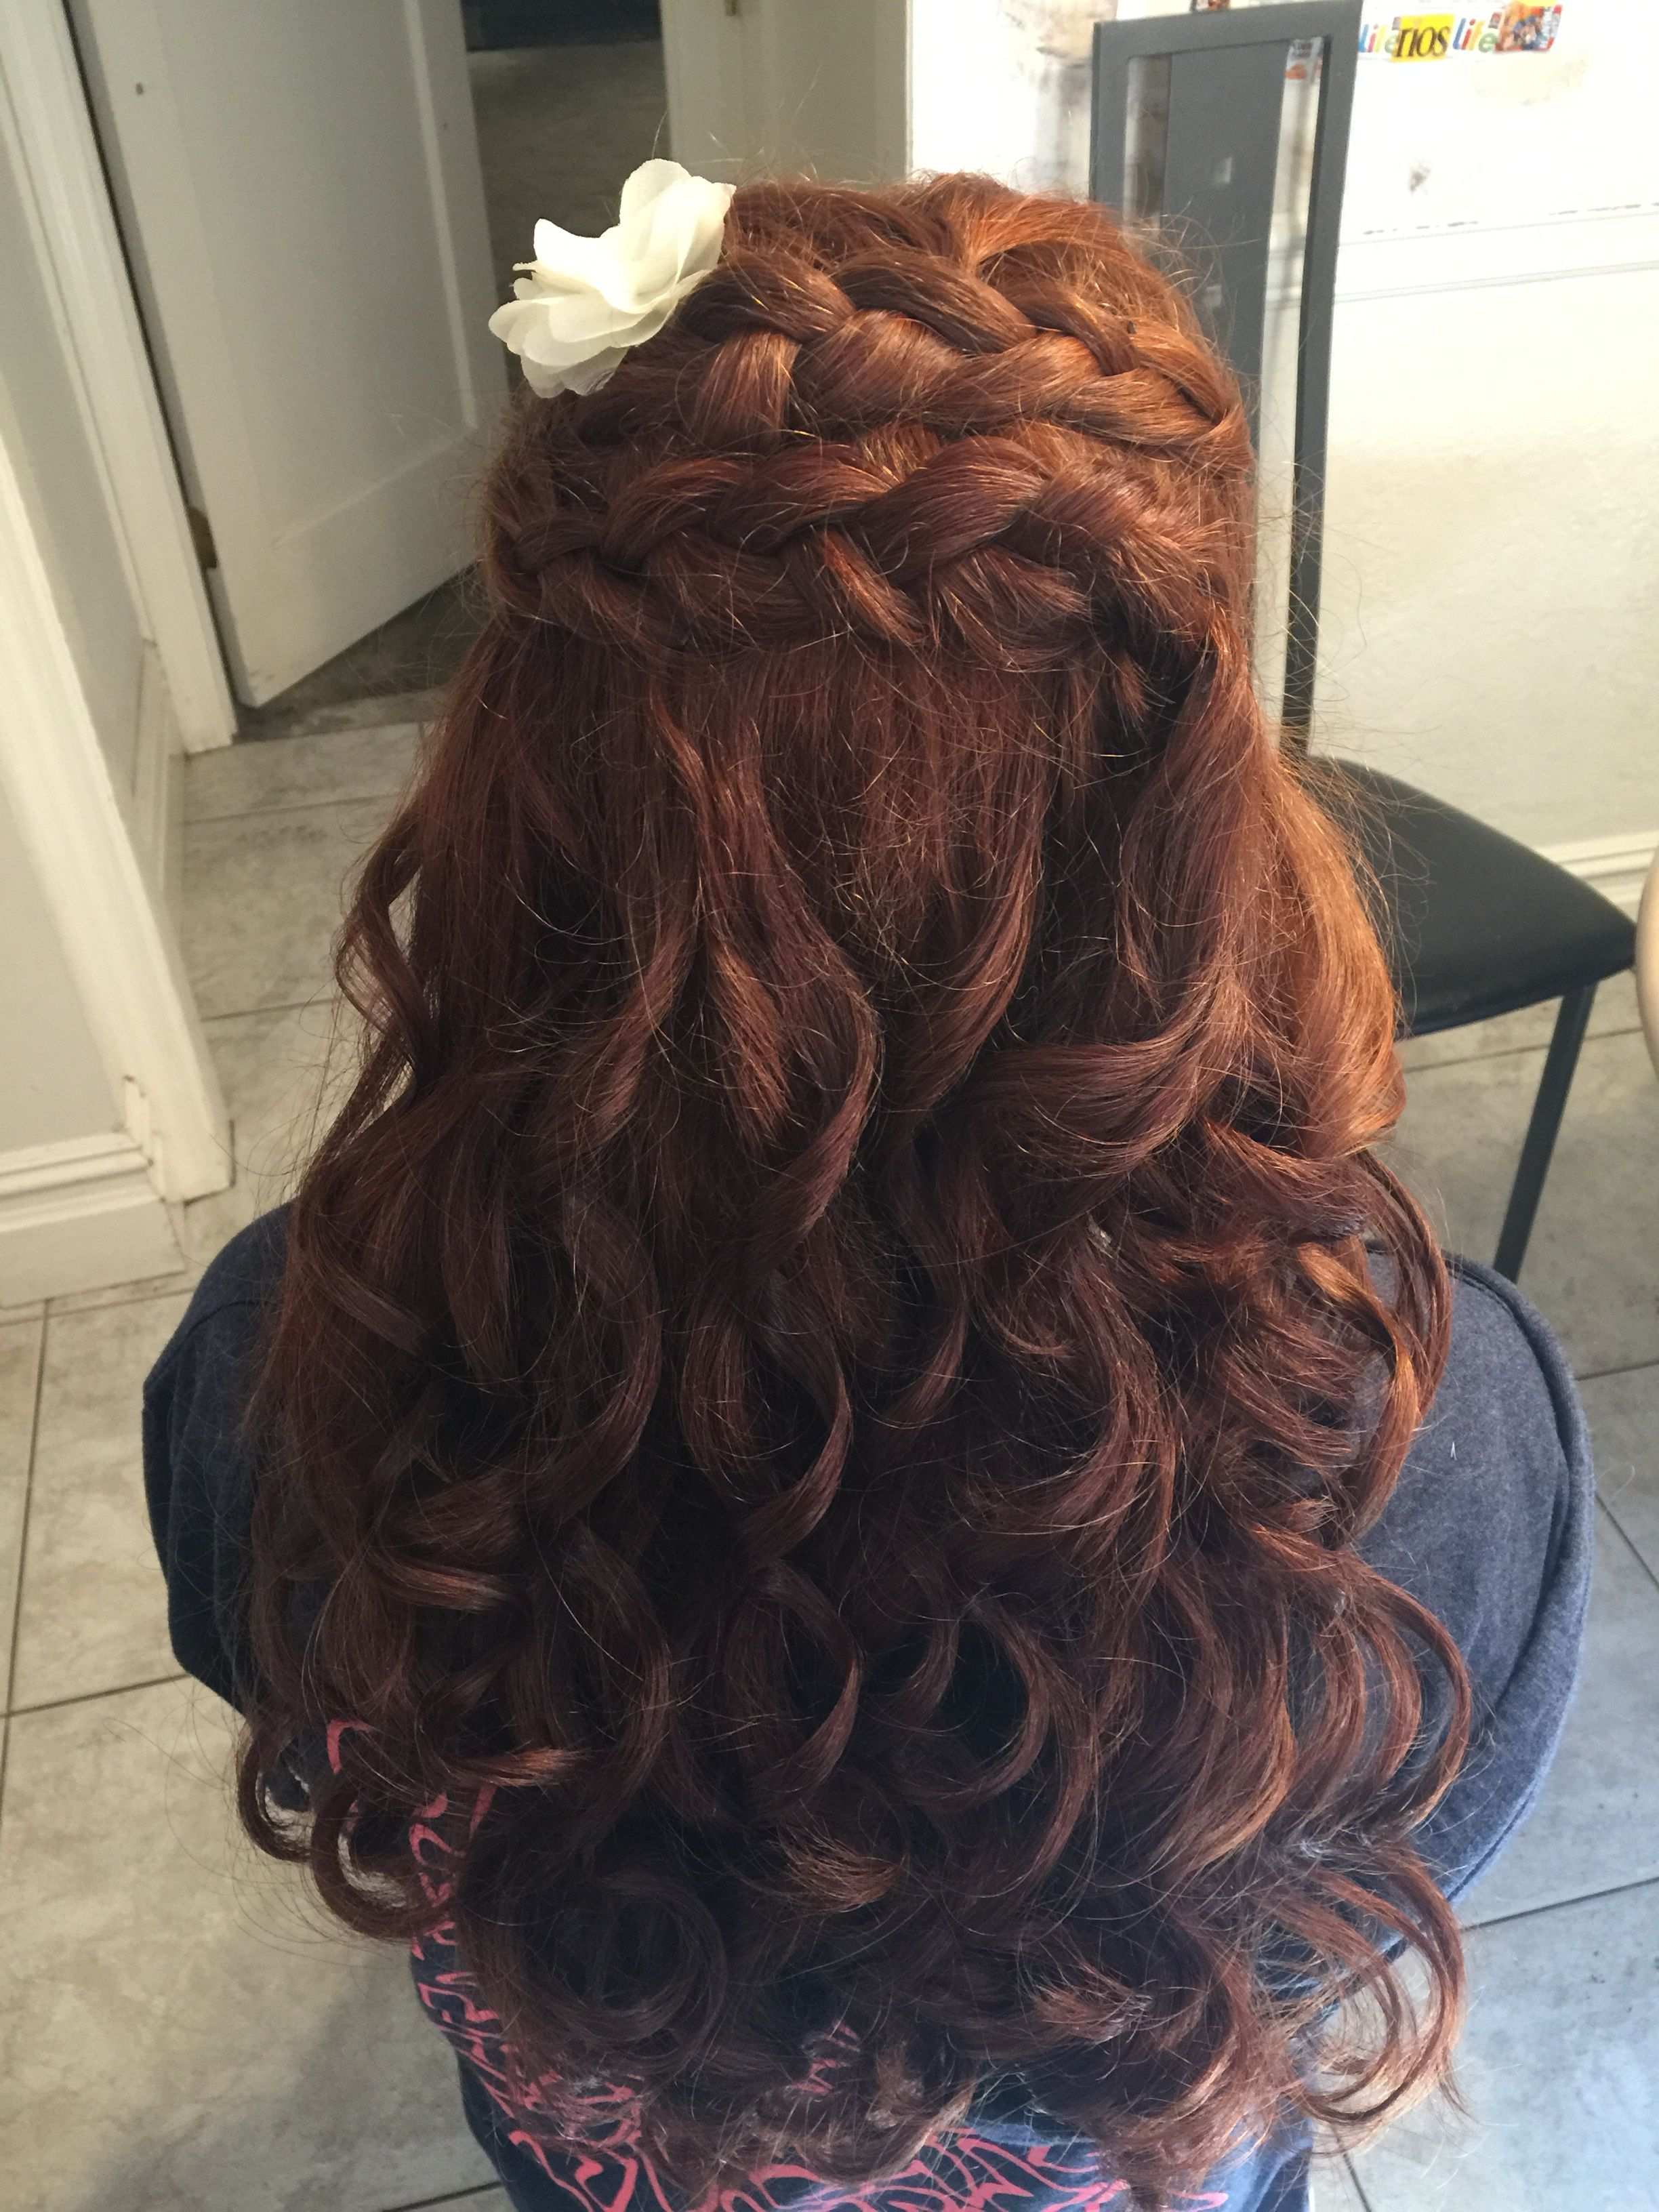 Gorgeous hair, great style!